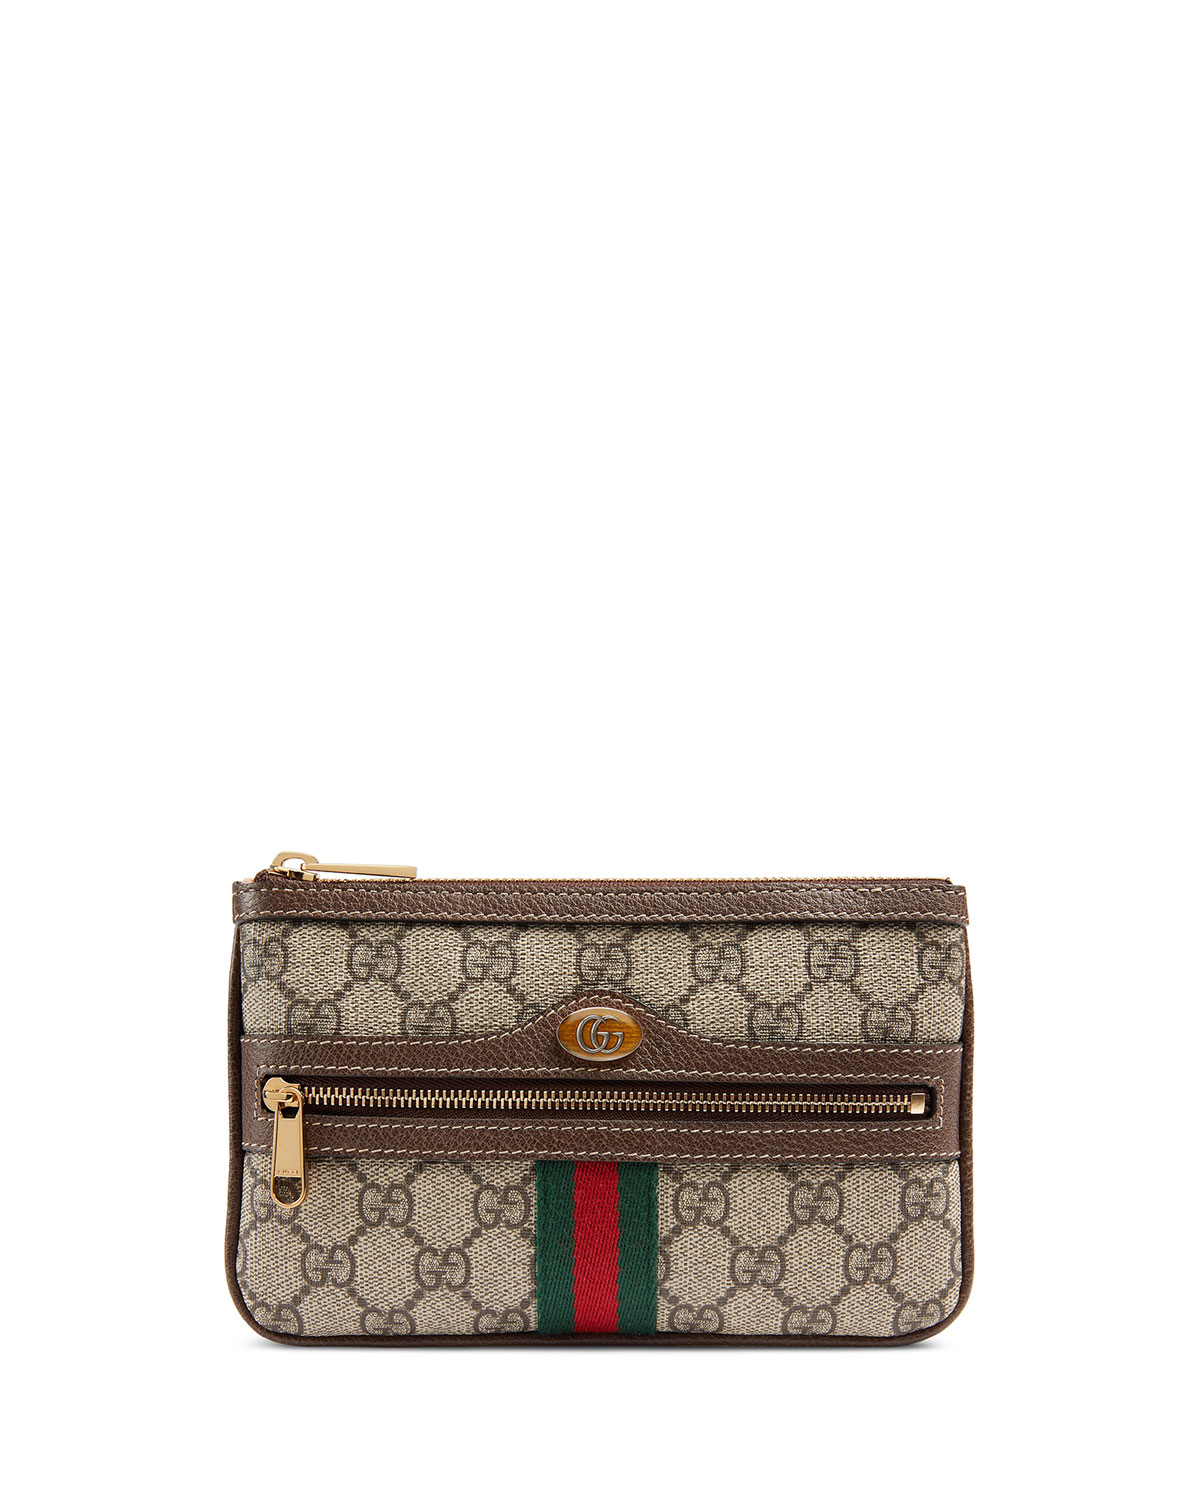 8b1931bbb4f Gucci Ophidia Small GG Supreme Pouch Clutch Bag